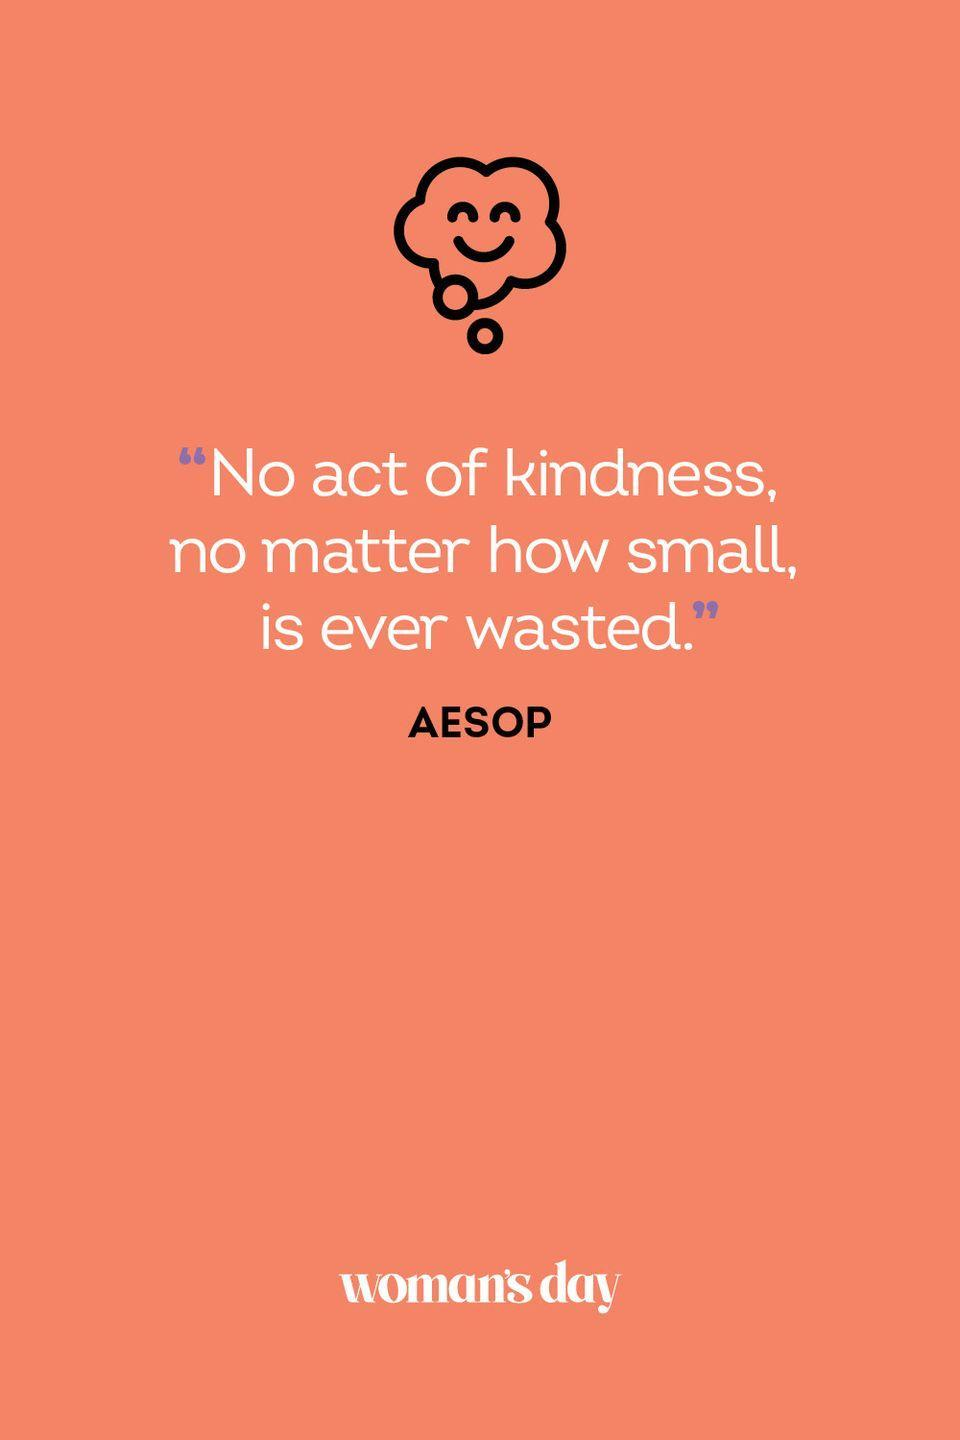 <p>No act of kindness, no matter how small, is ever wasted.</p>